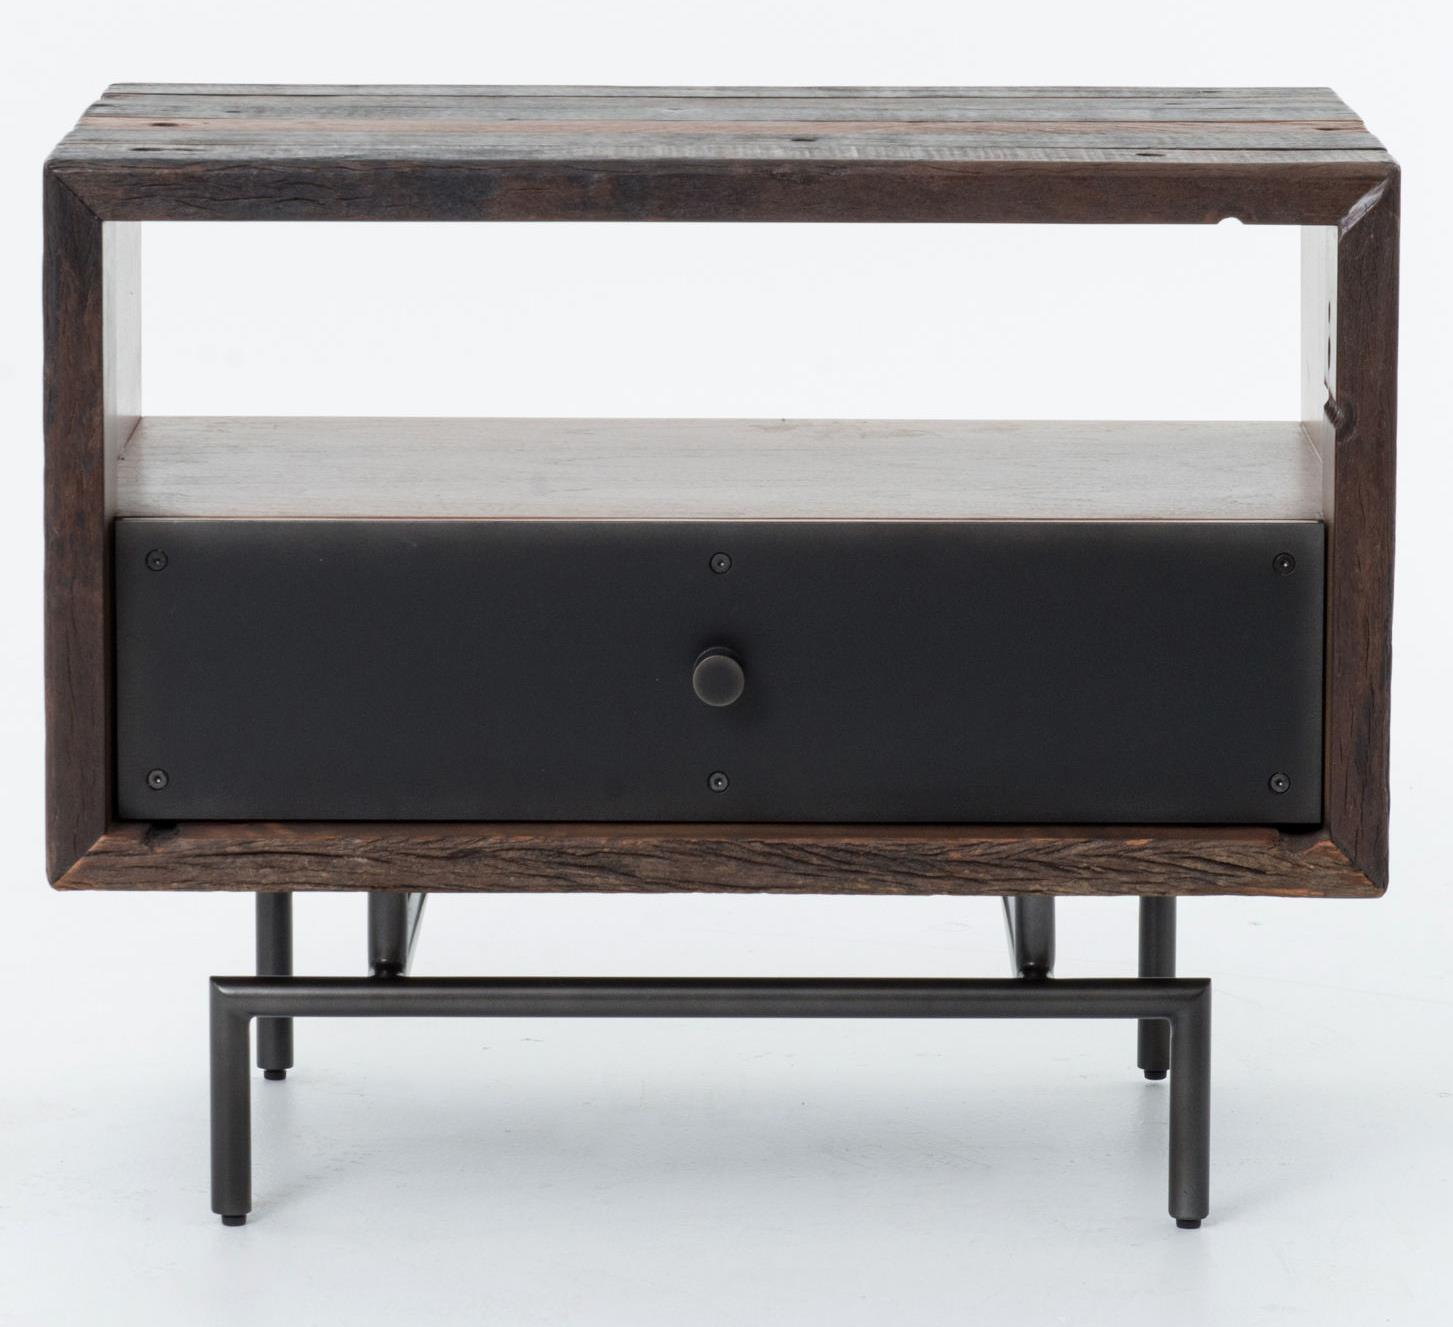 Four Hands Bina Nash Side Table - Item Number: VBNA-ST272